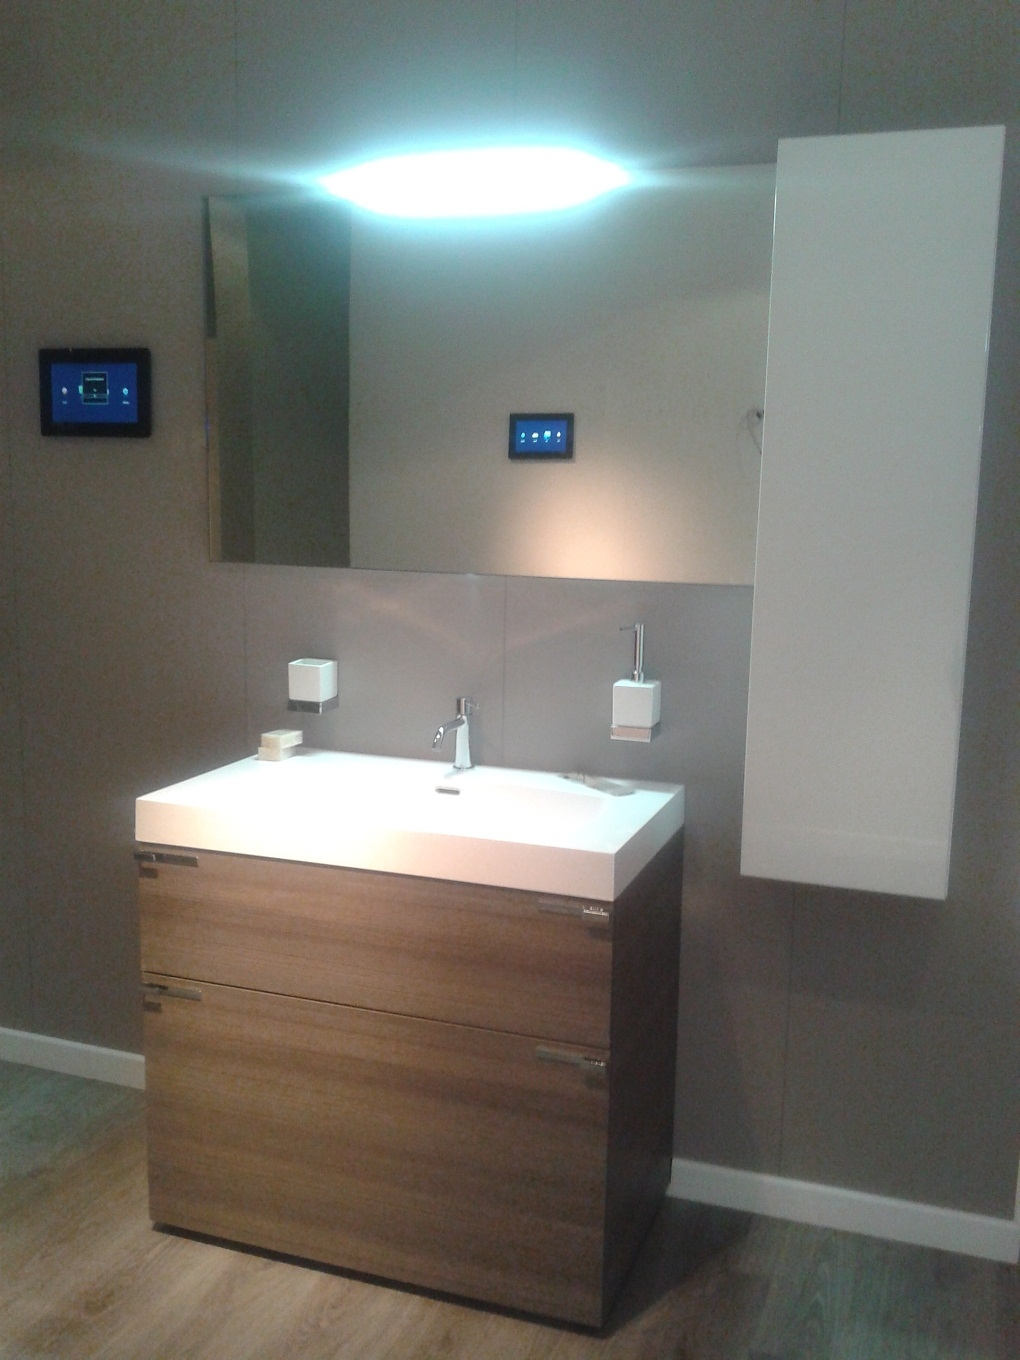 Idee piastrelle bagno - Outlet piastrelle bagno ...